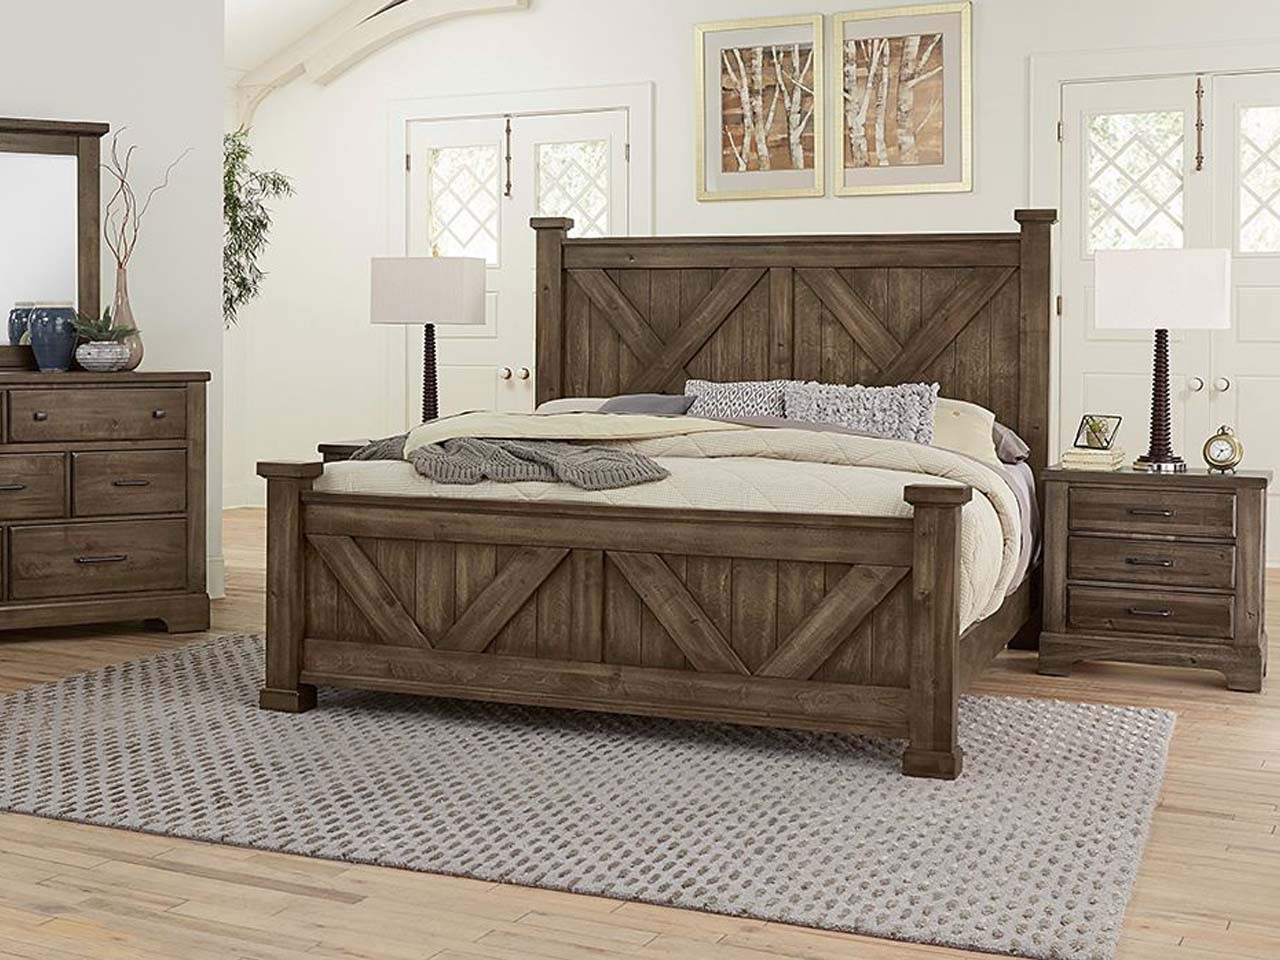 Cool Rustic X Panel Bed with Standard rails